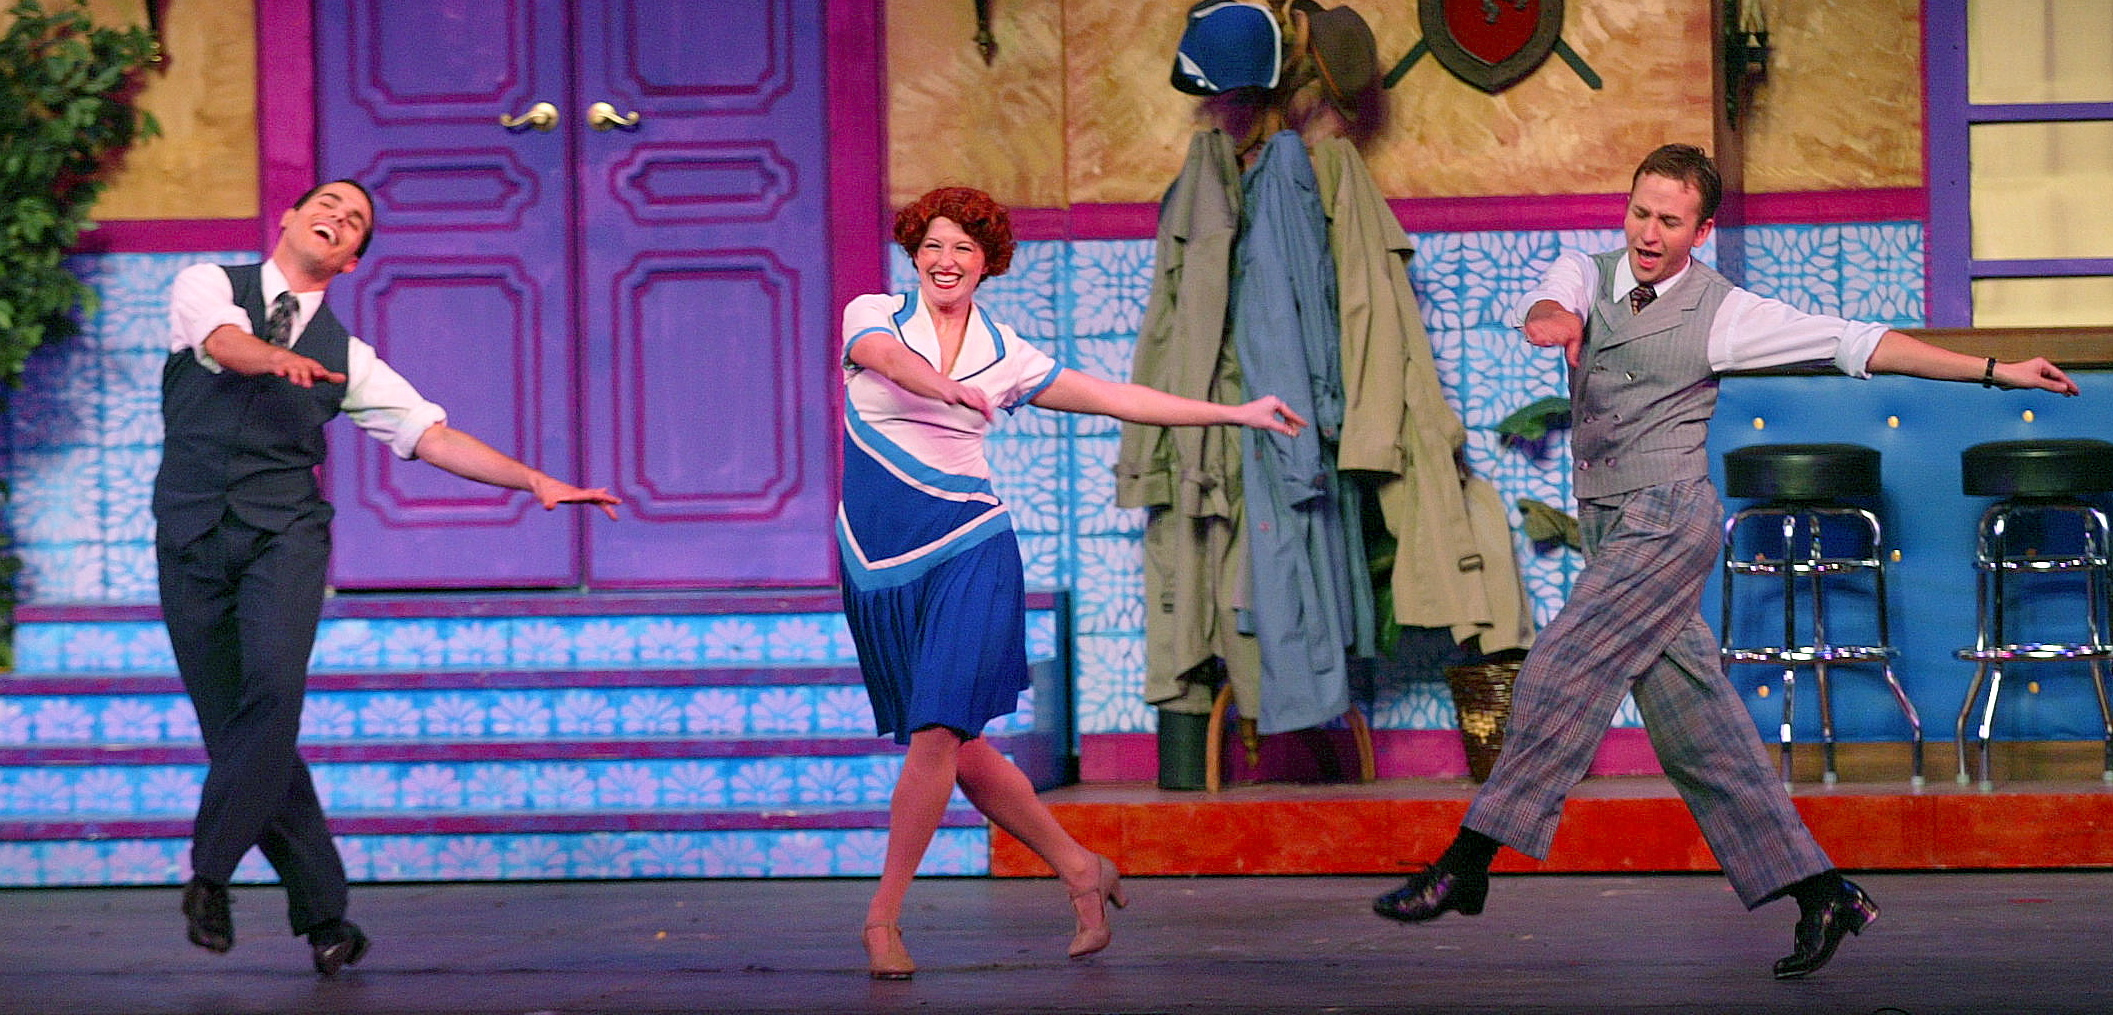 "JMC as Don, Cheryl Galaga as Kathy and Courter Simmons as Cosmo in ""Singin' in the Rain"" - Hofstra G"